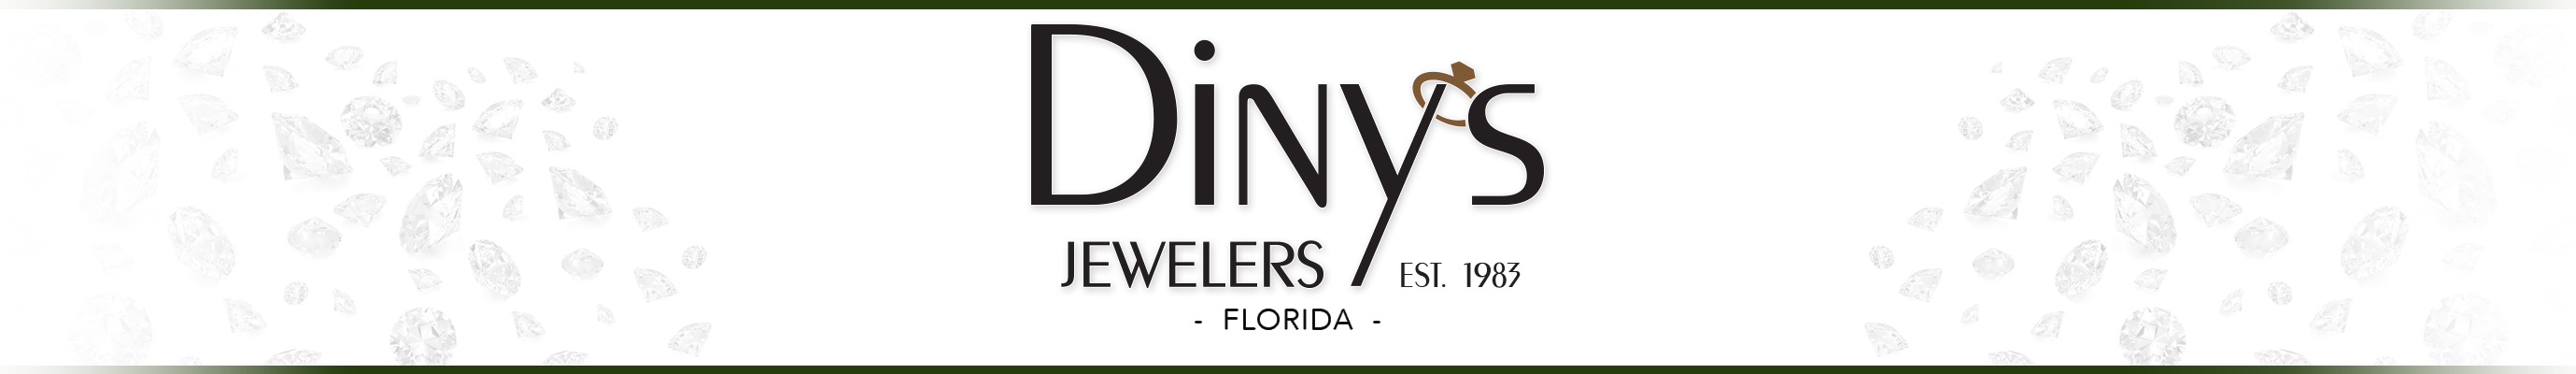 Diny's Jewelers of Florida Logo